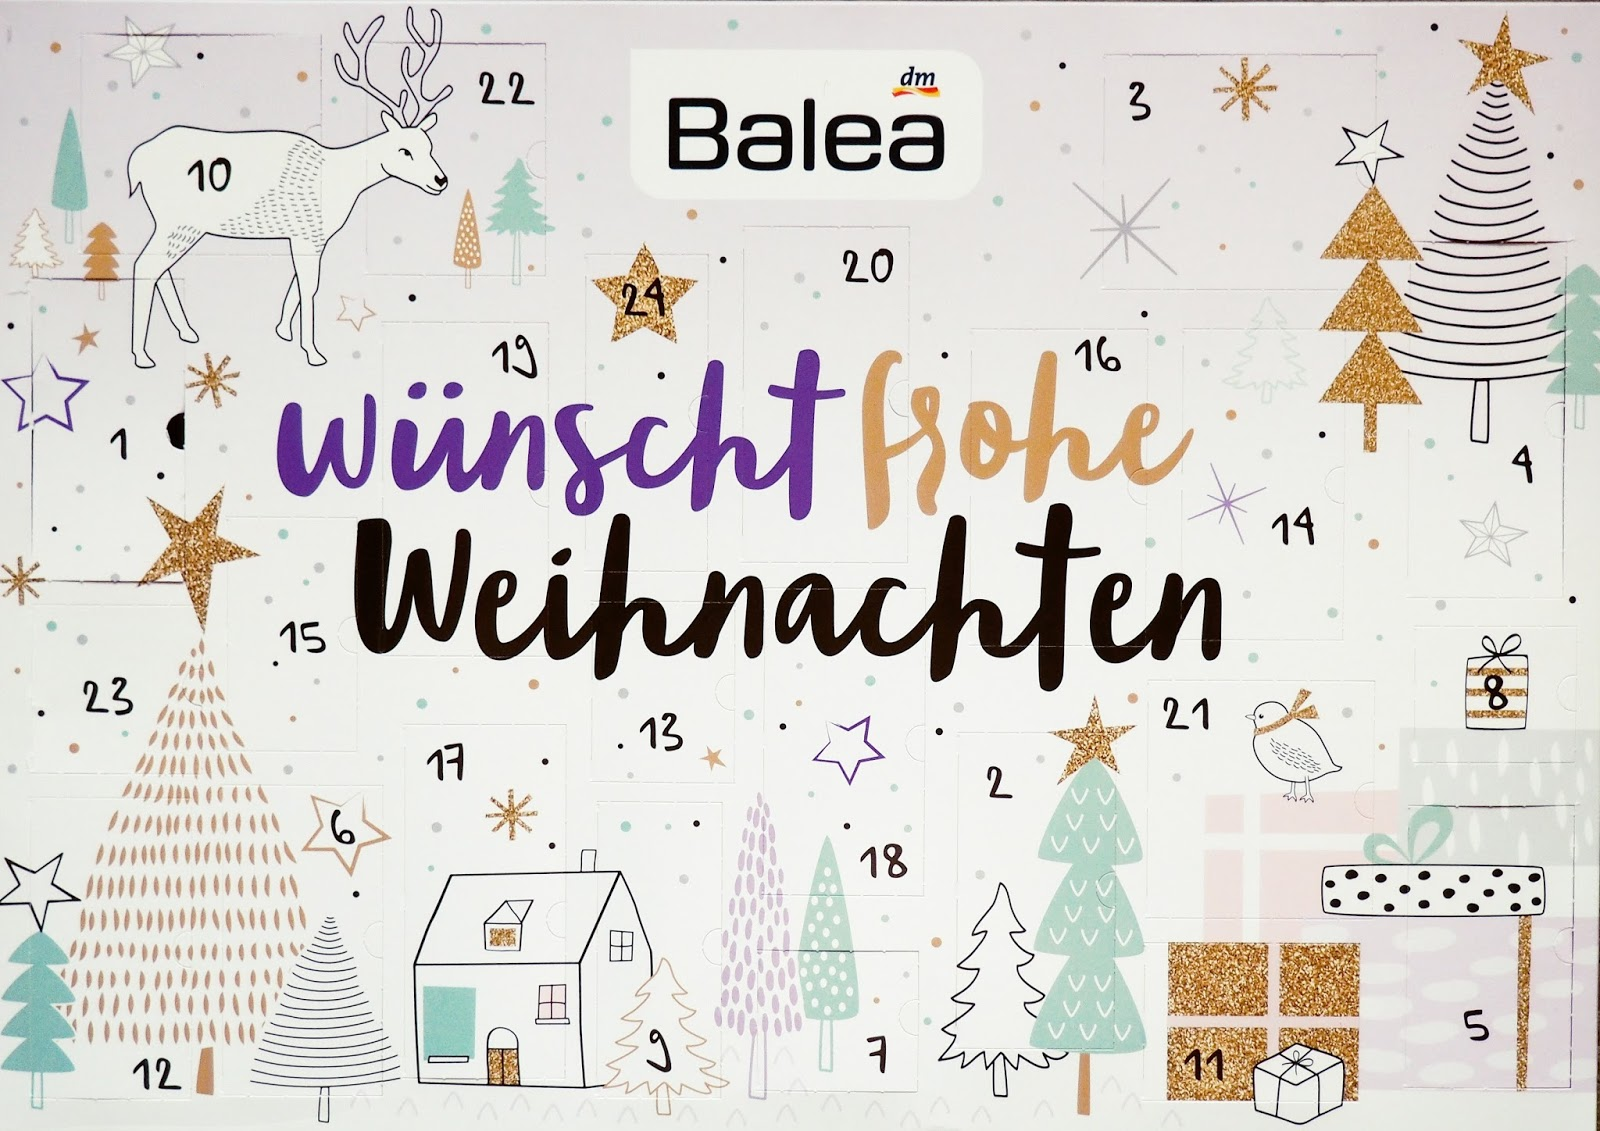 dm adventni kalendar S I S T E R S H O O D S: Balea advent calendar | Balea adventní  dm adventni kalendar